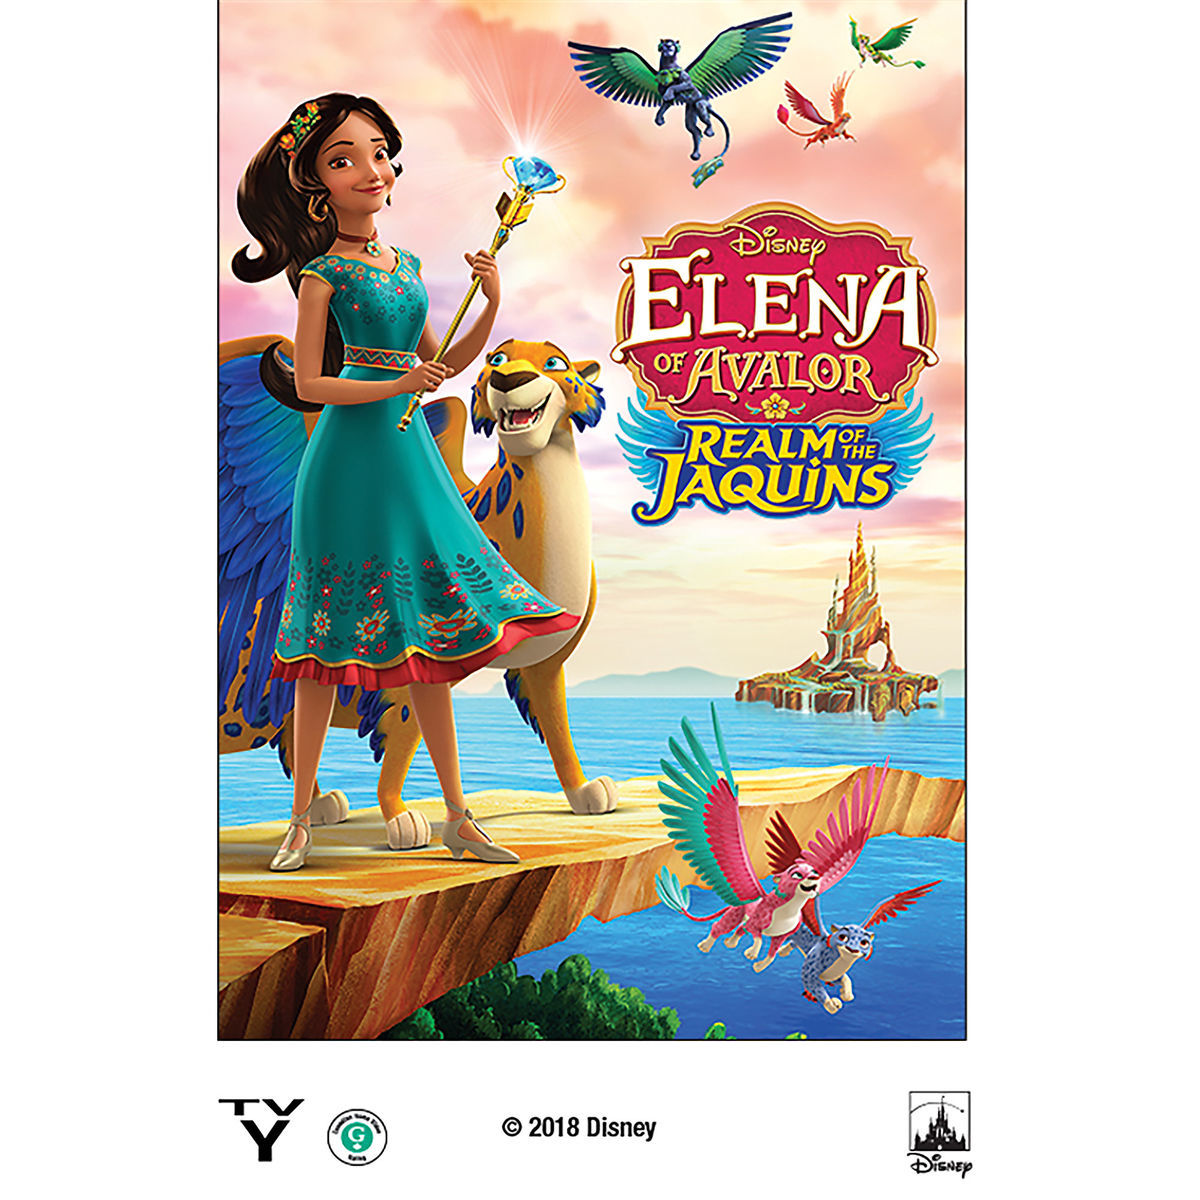 Elena Of Avalor Realm Of The Jaquins Out Now On Dvd Diskingdom